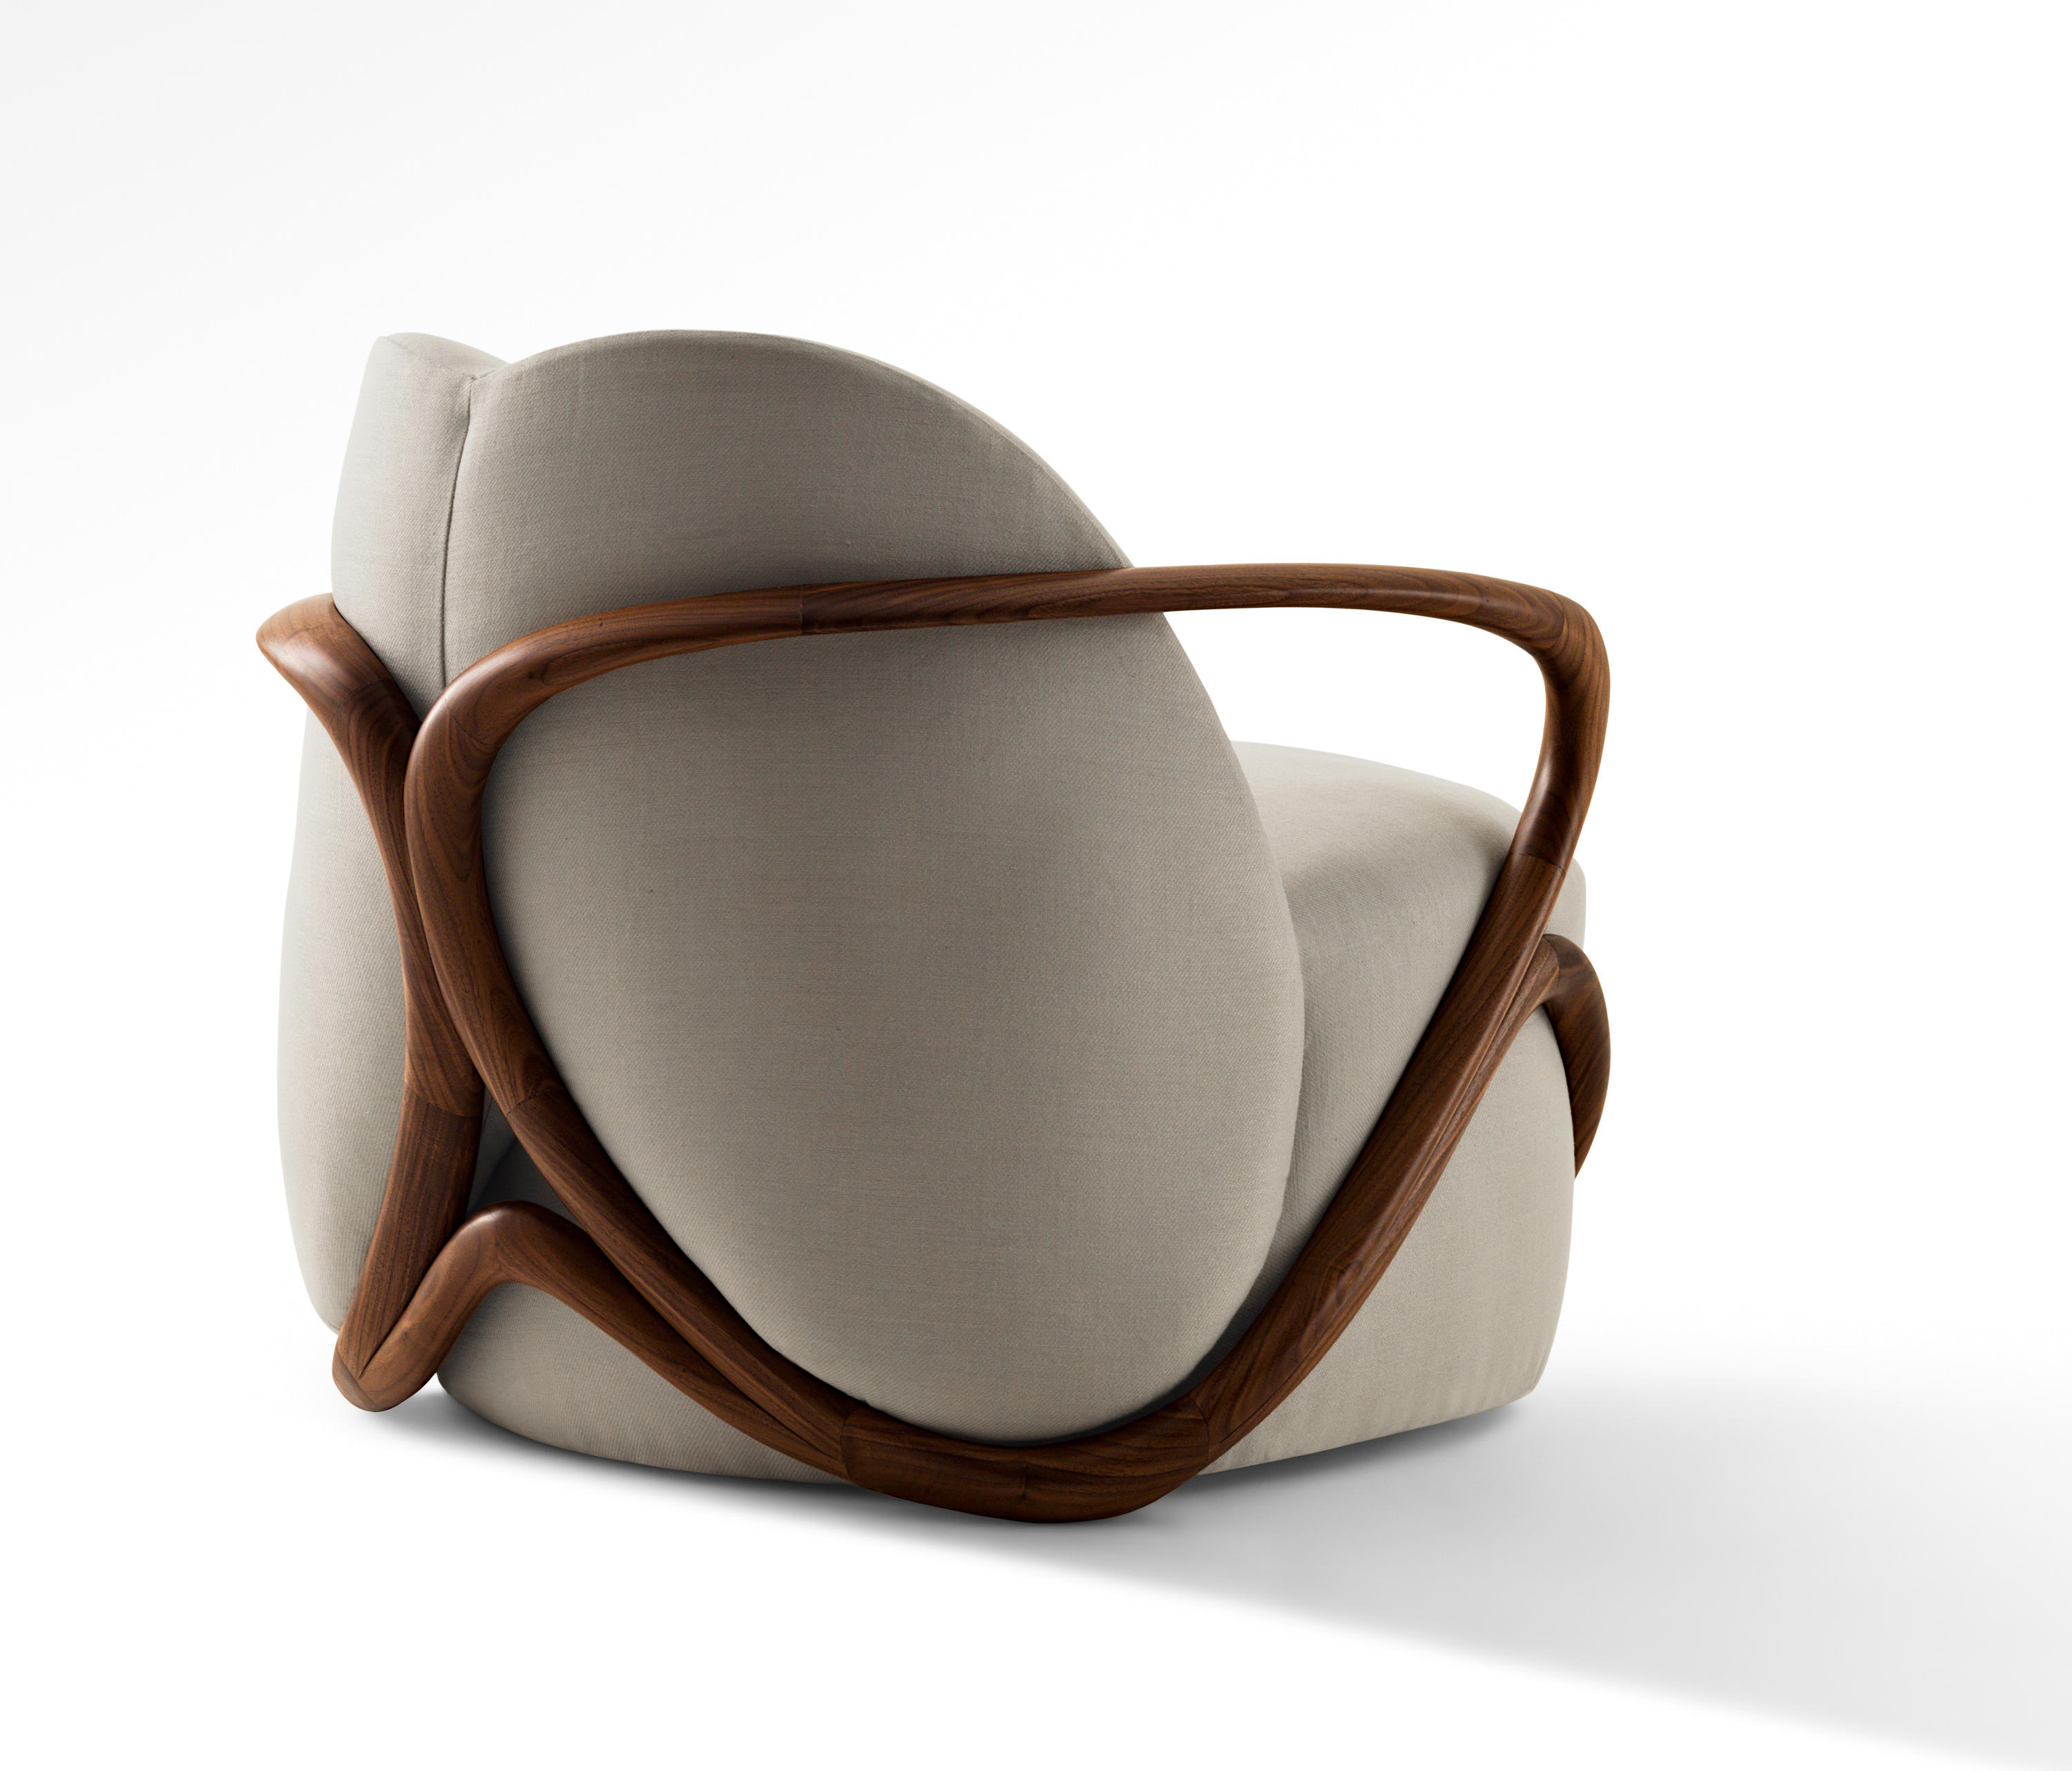 Hug armchair lounge chairs from giorgetti architonic for Designer armchairs